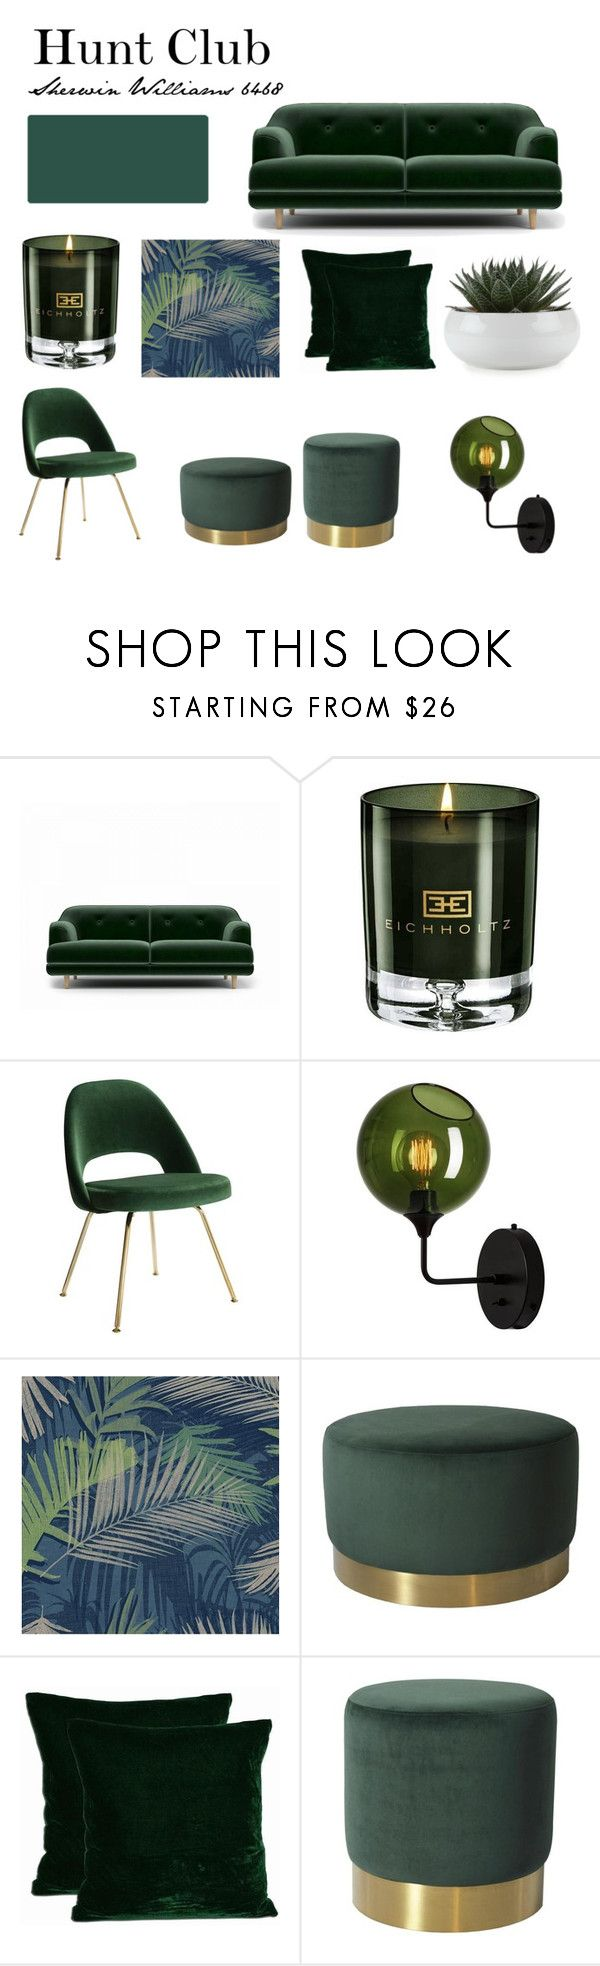 """""""Hunt Club Green"""" by seeseainteriors on Polyvore featuring interior, interiors, interior design, home, home decor, interior decorating, Eichholtz, Knoll and Boutique"""